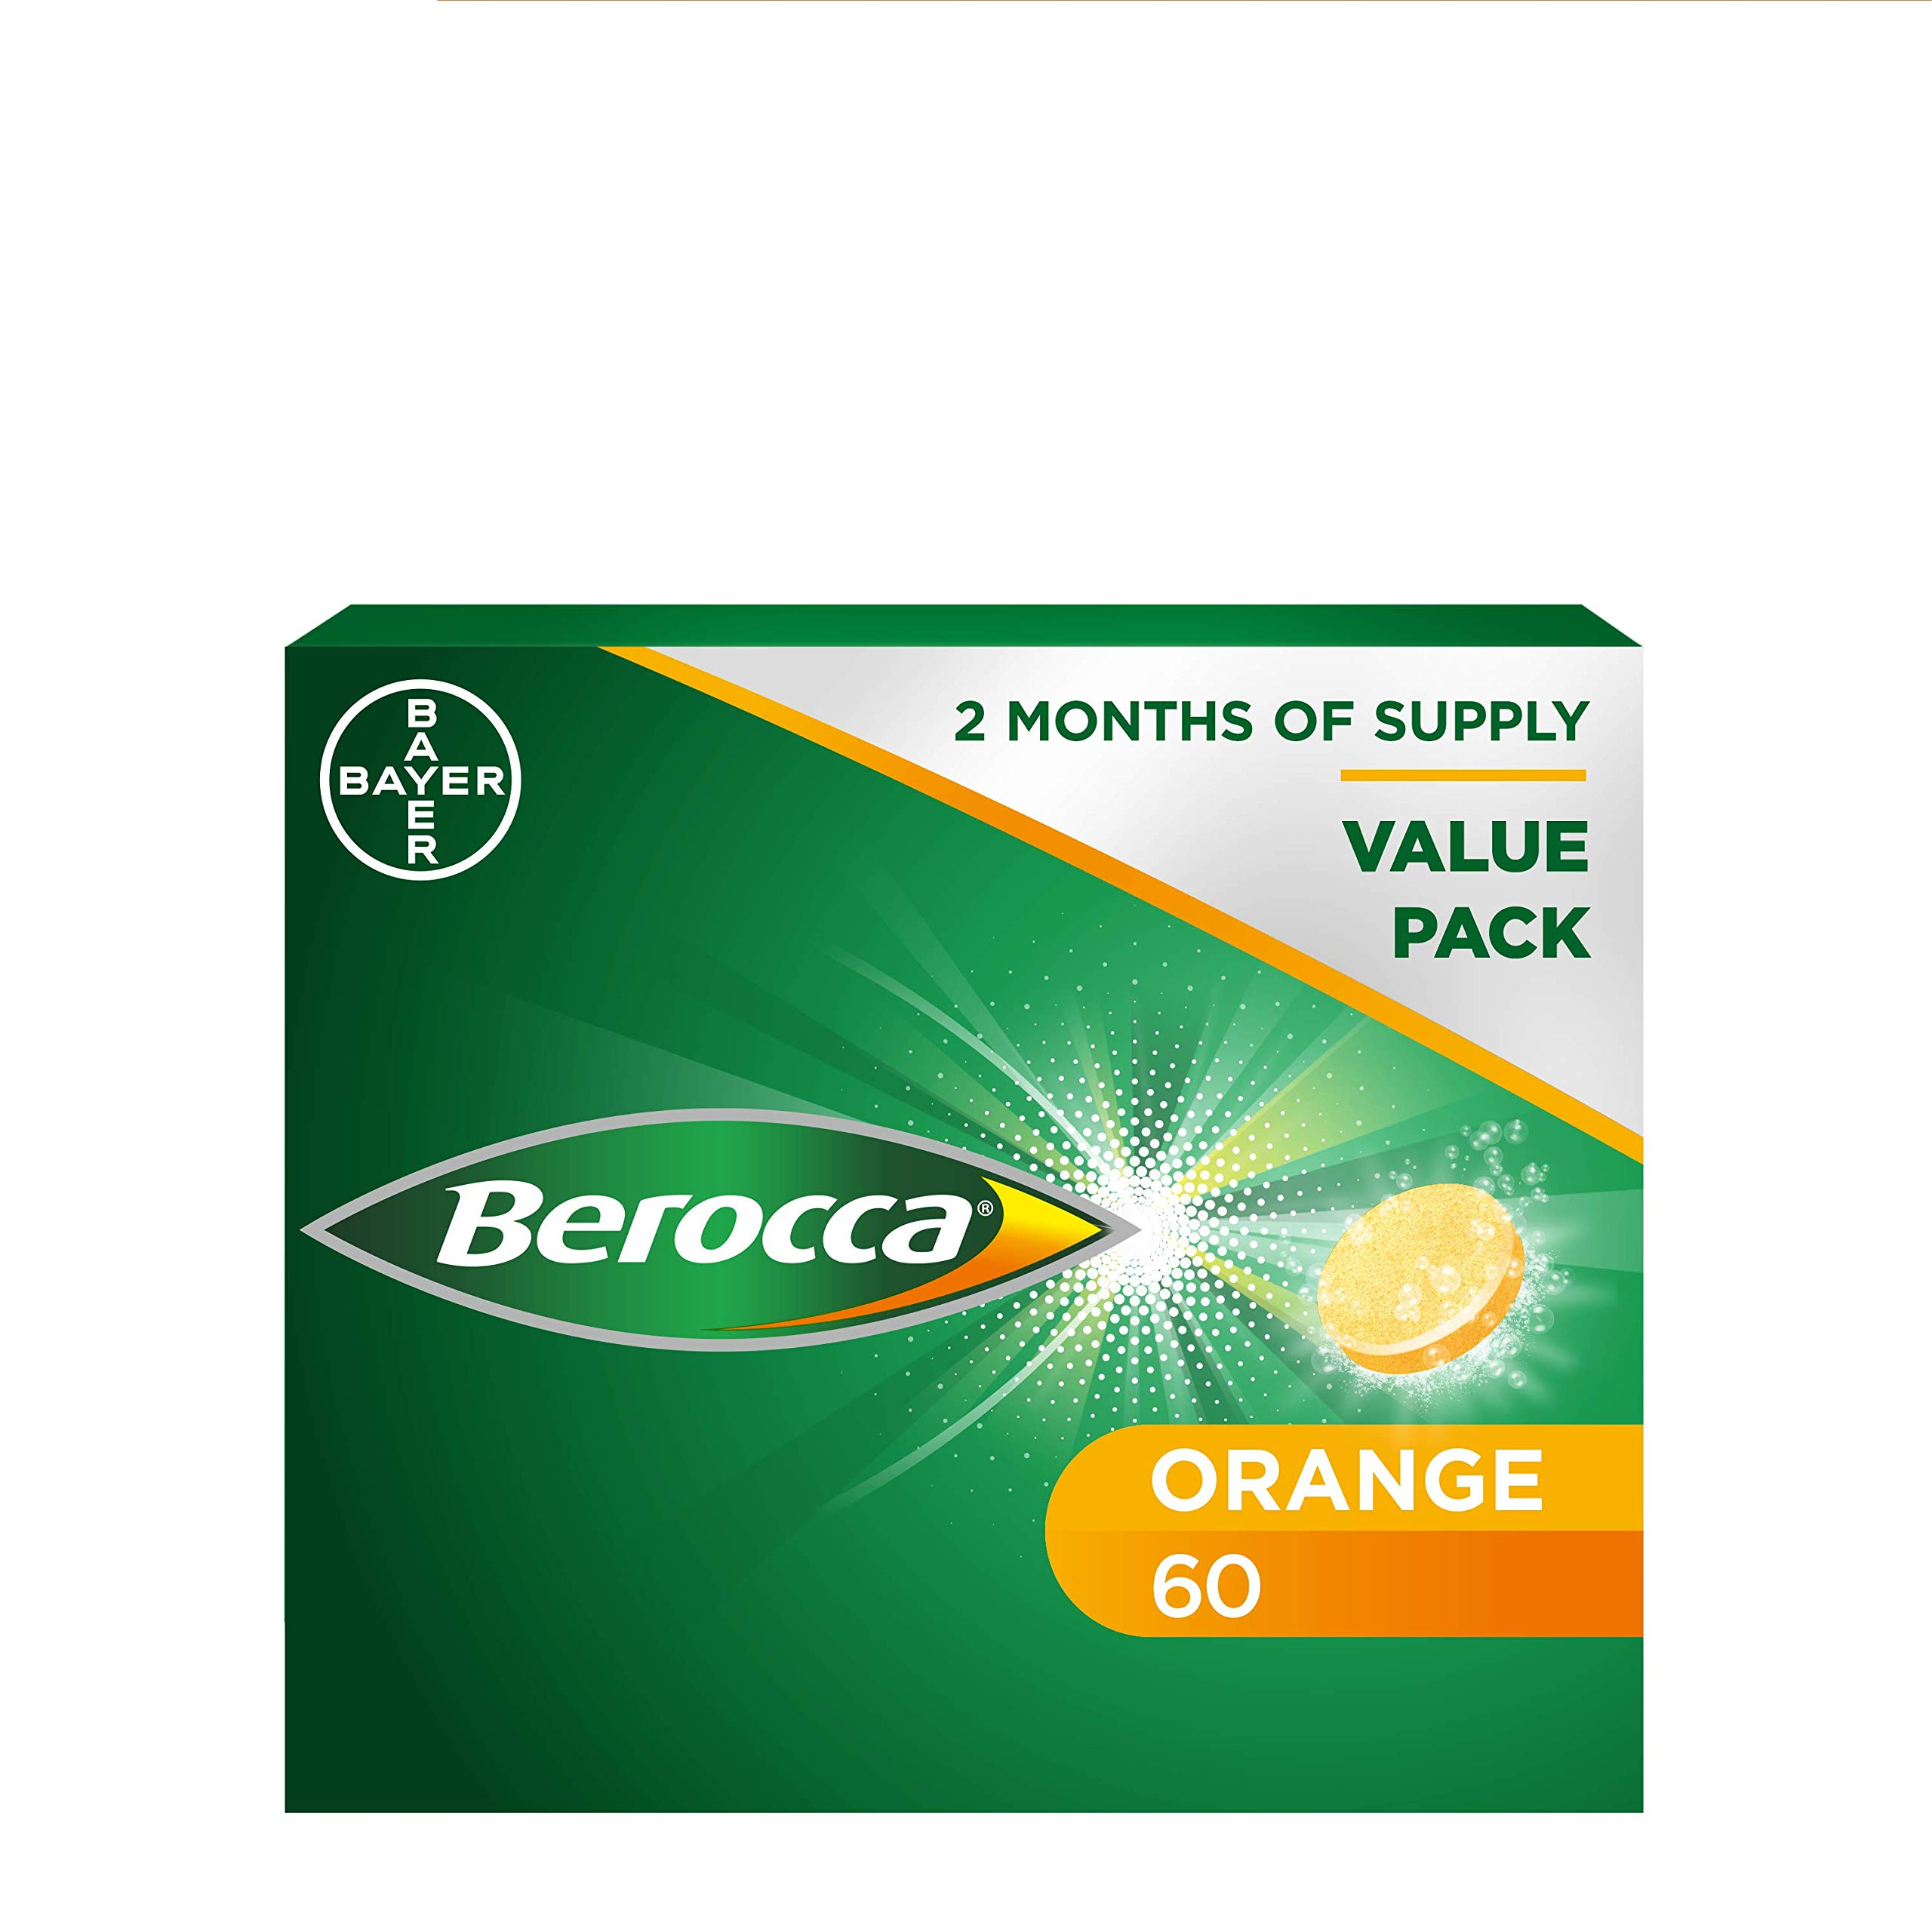 Berocca Energy Vitamin Tablets Orange Flavour, High Dose of Vitamin B Complex, Vitamin B12,60 Tablets (4 x 15)- 2 Months Supply(Packaging may vary)